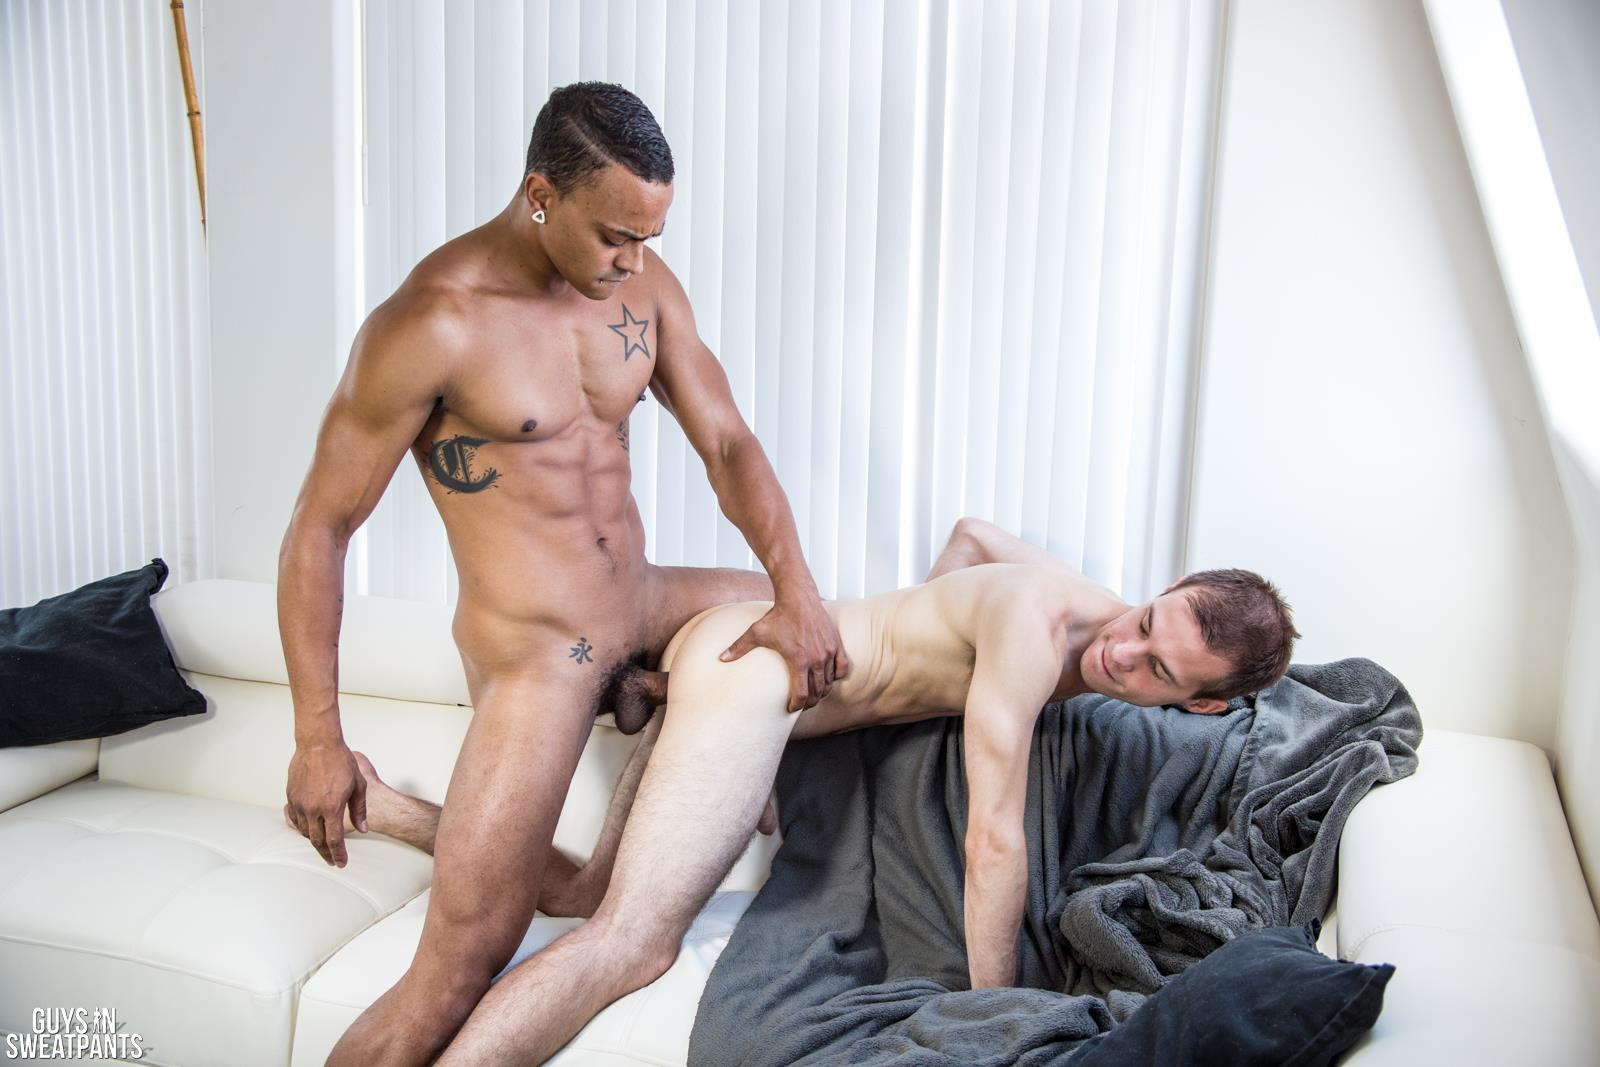 Guys-In-Sweat-Pants-Cameron-Jakob-and-Dillon-Hays-Interracial-Bareback-Breeding-Amateur-Gay-Porn-07 Versatile Hung Black Guy Fucks A White Boy With A Huge Uncut Cock